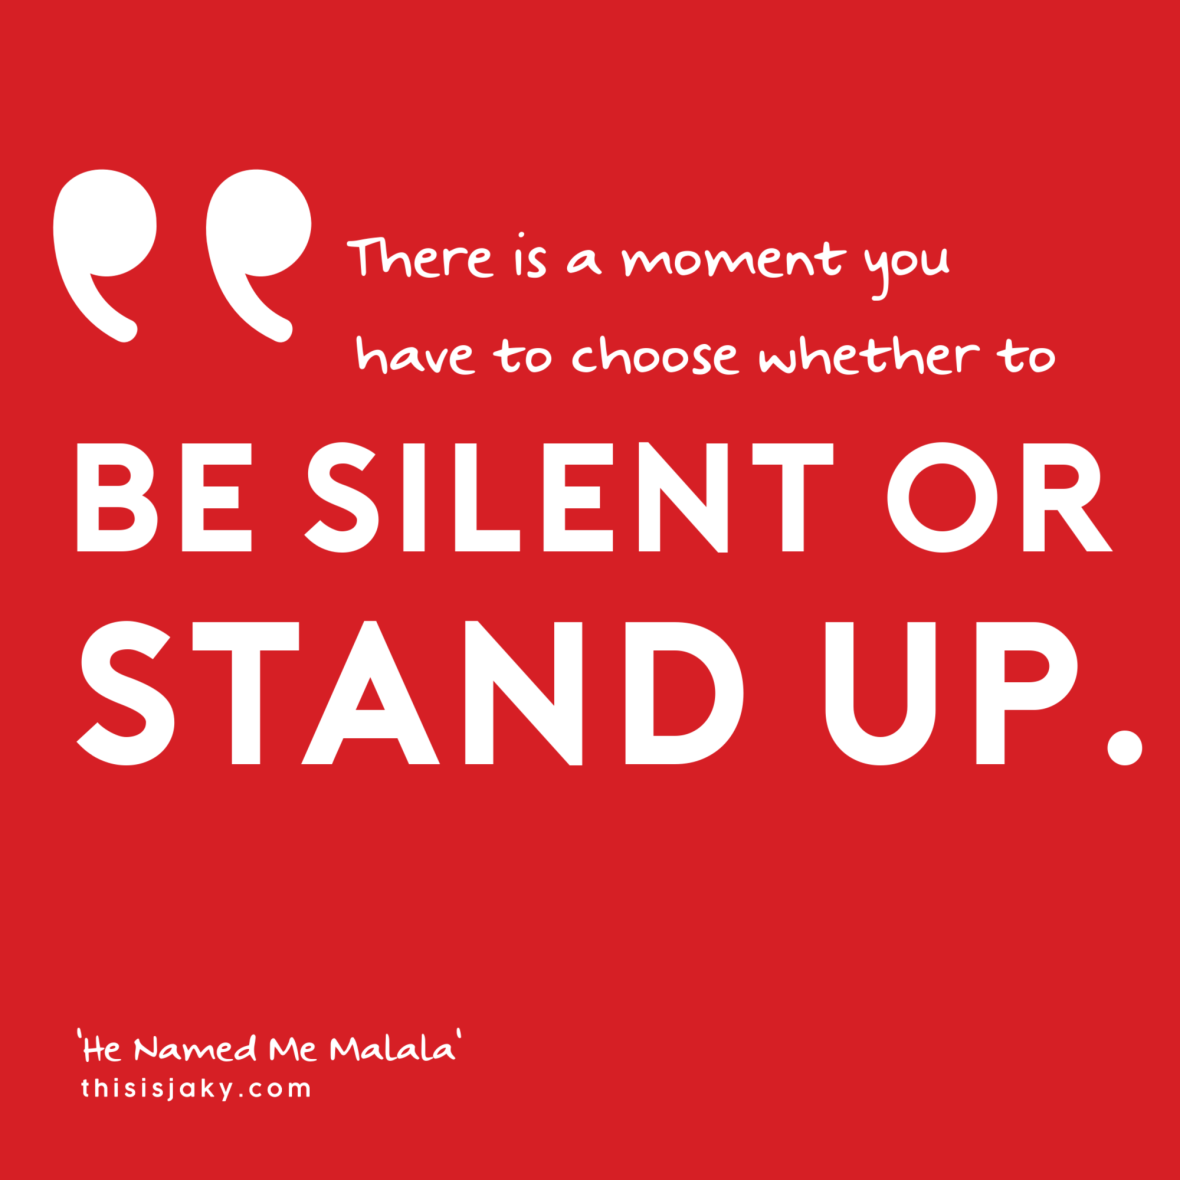 Stand up (1).png